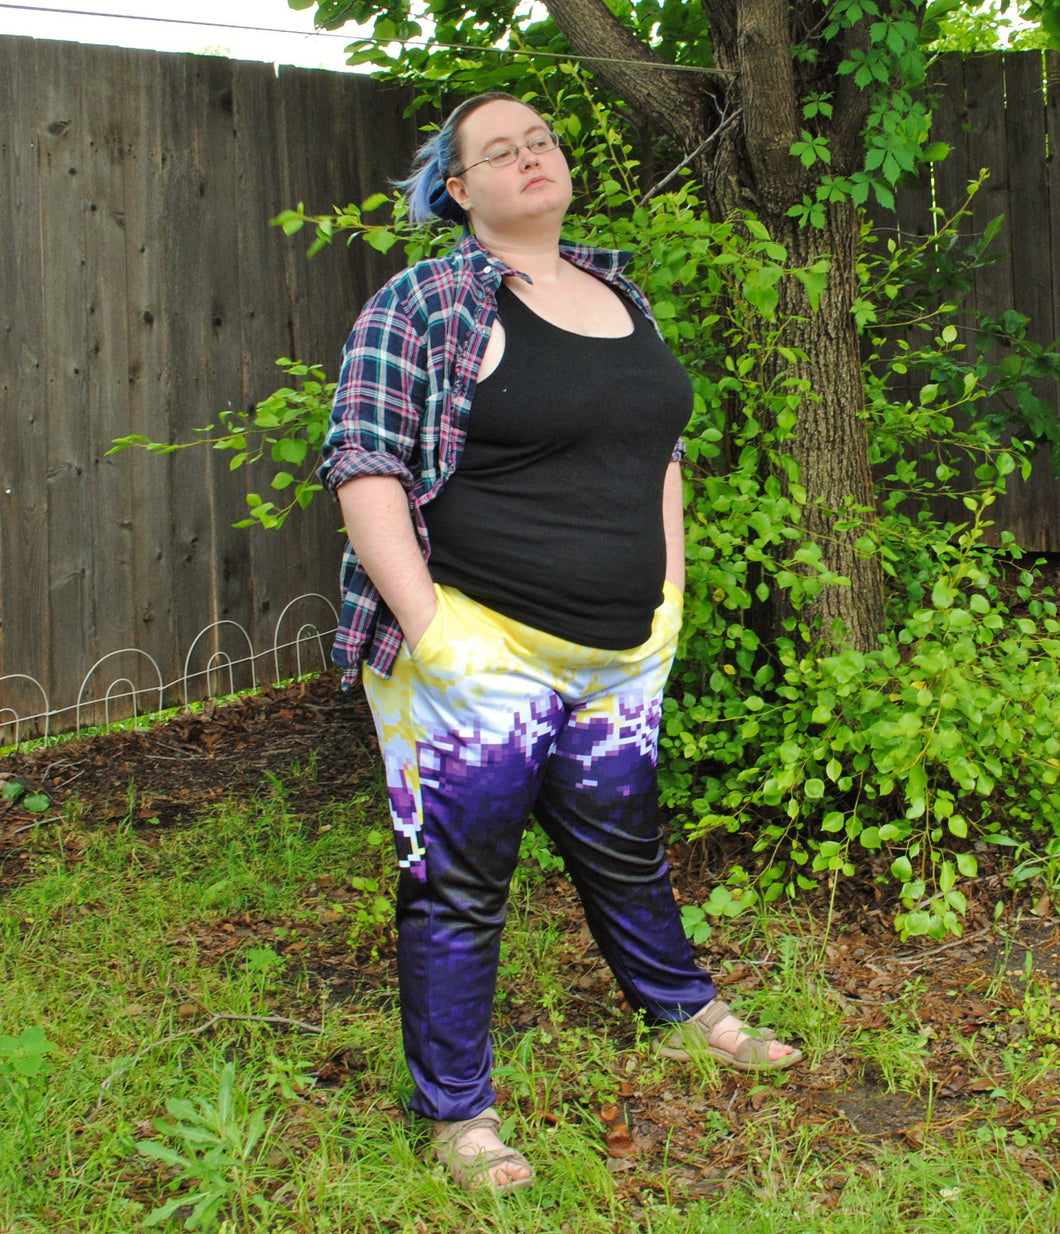 Pixel Pride Sunburst Jogger Pants with Pockets - Non-binary Pride